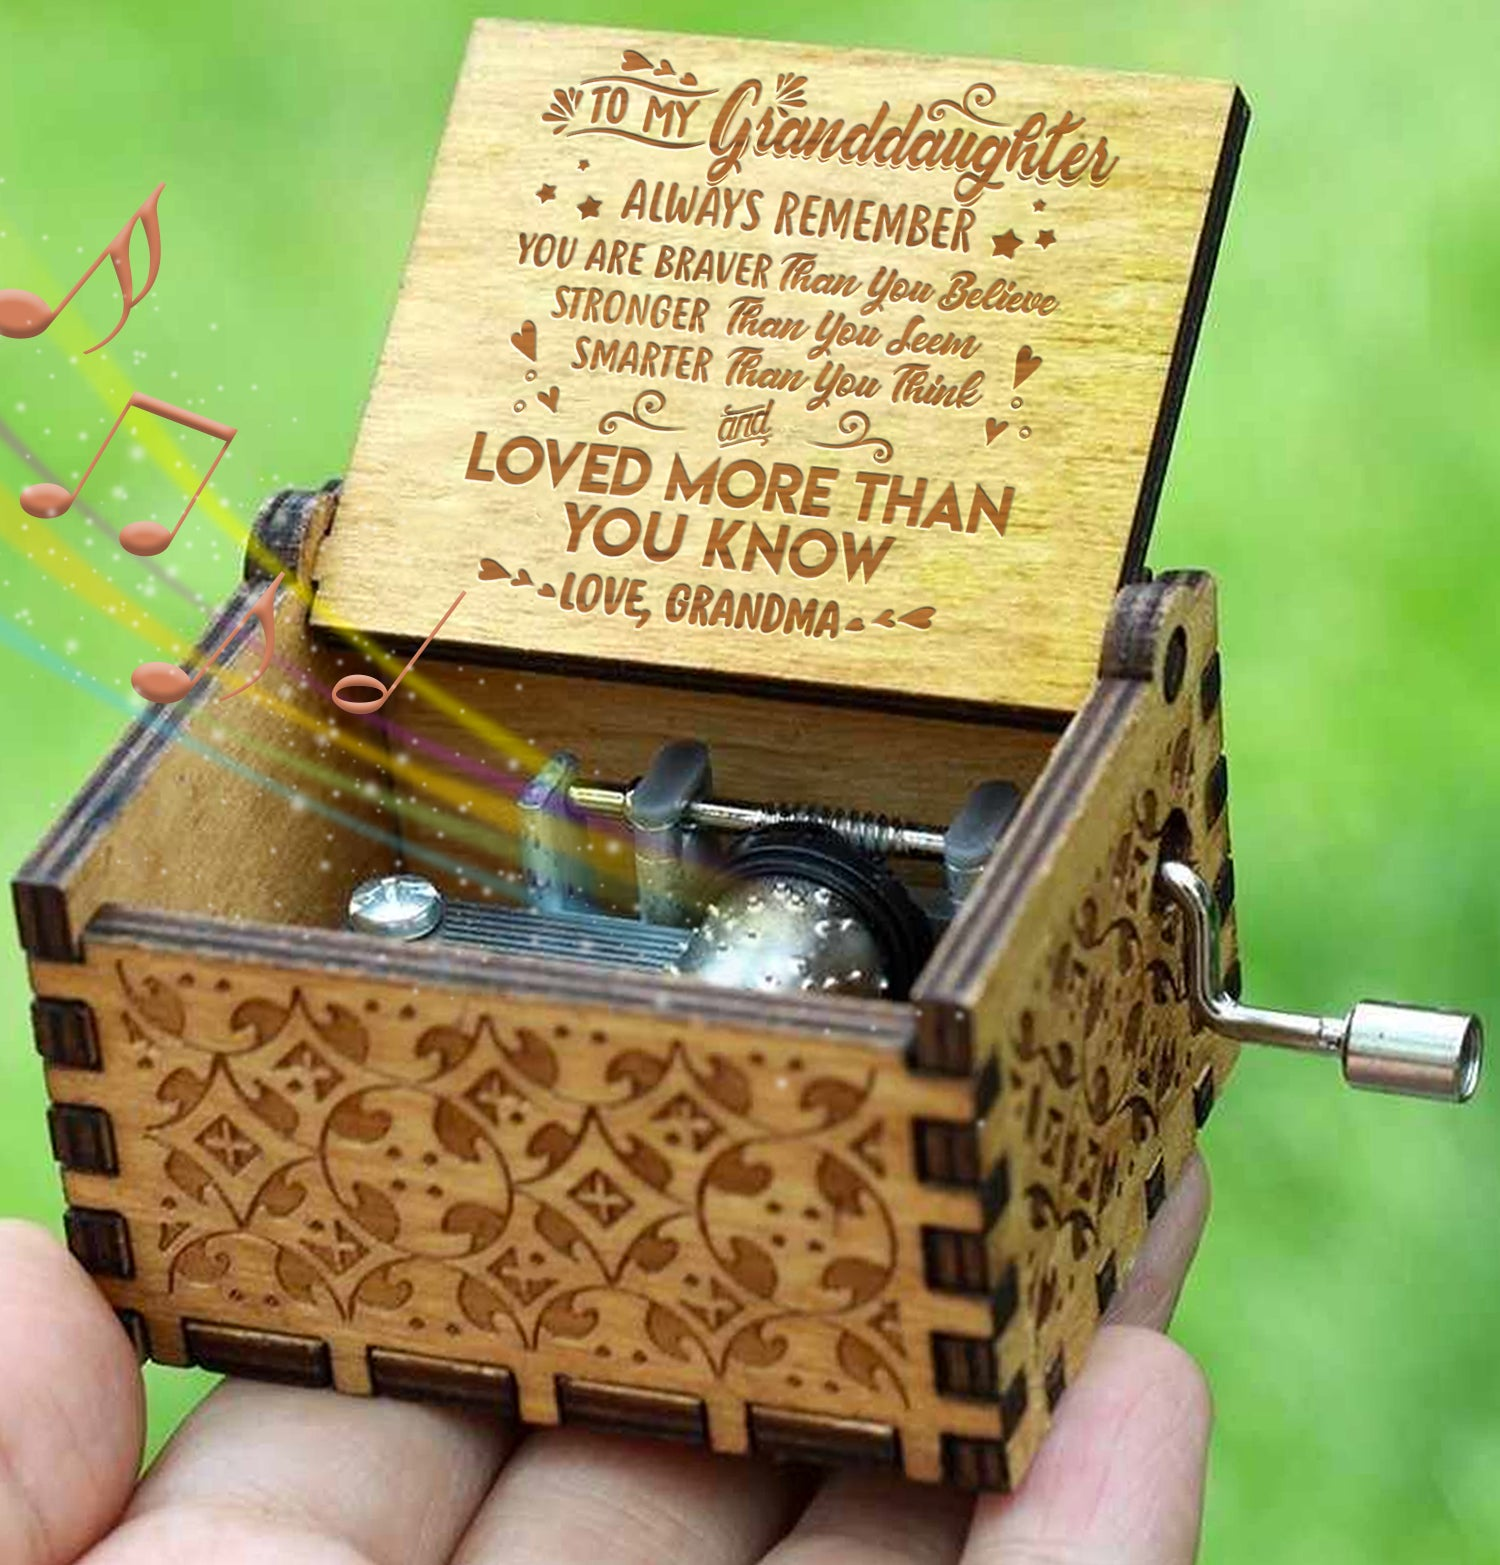 Grandma To Granddaughter - You Are Loved More Than You Know - Engraved Music Box